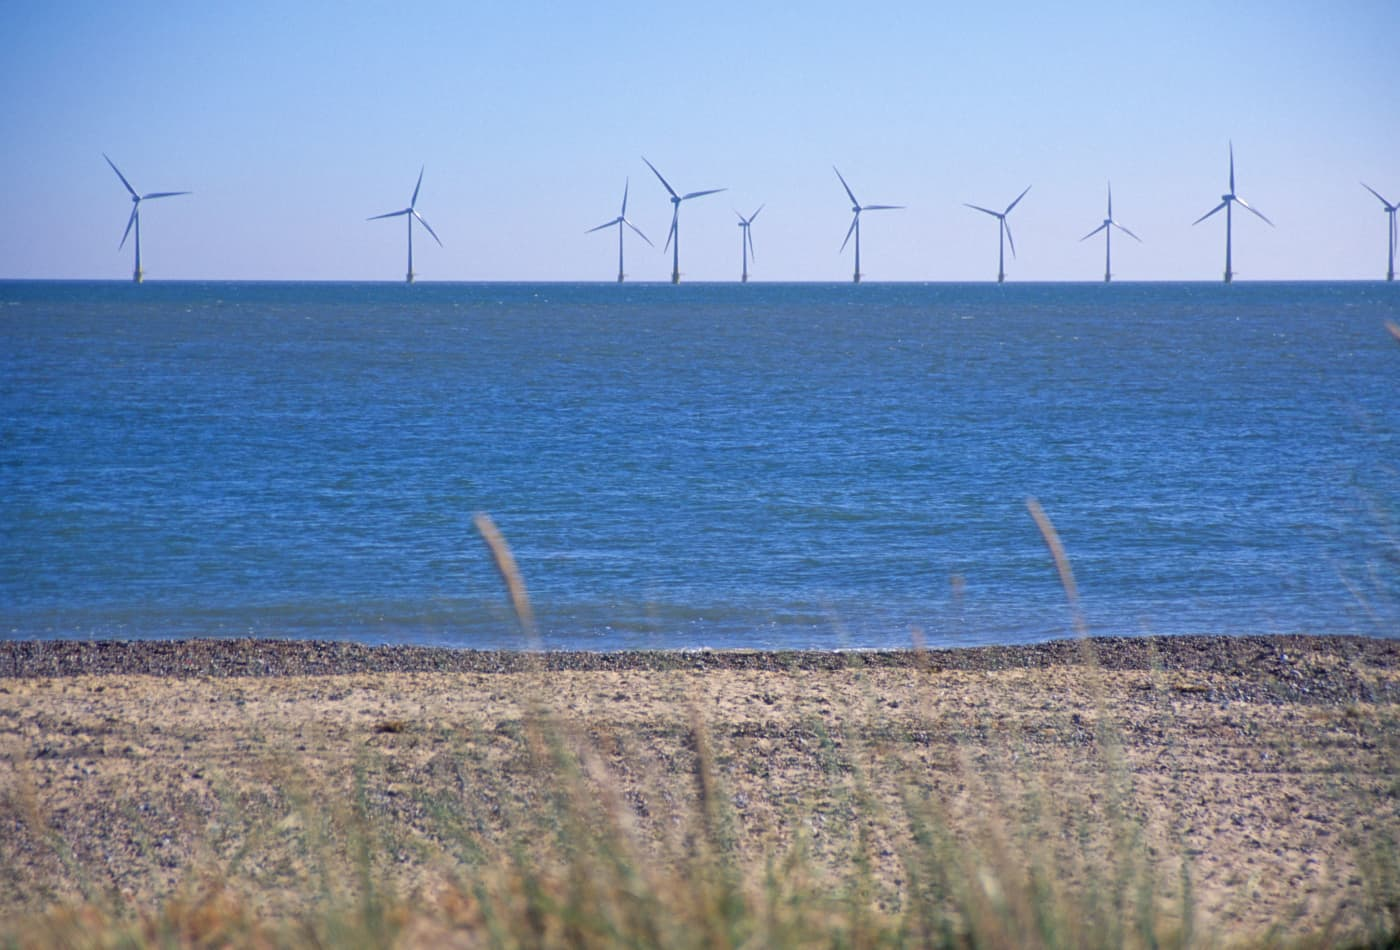 Offshore wind installations in European waters hit a record level last year